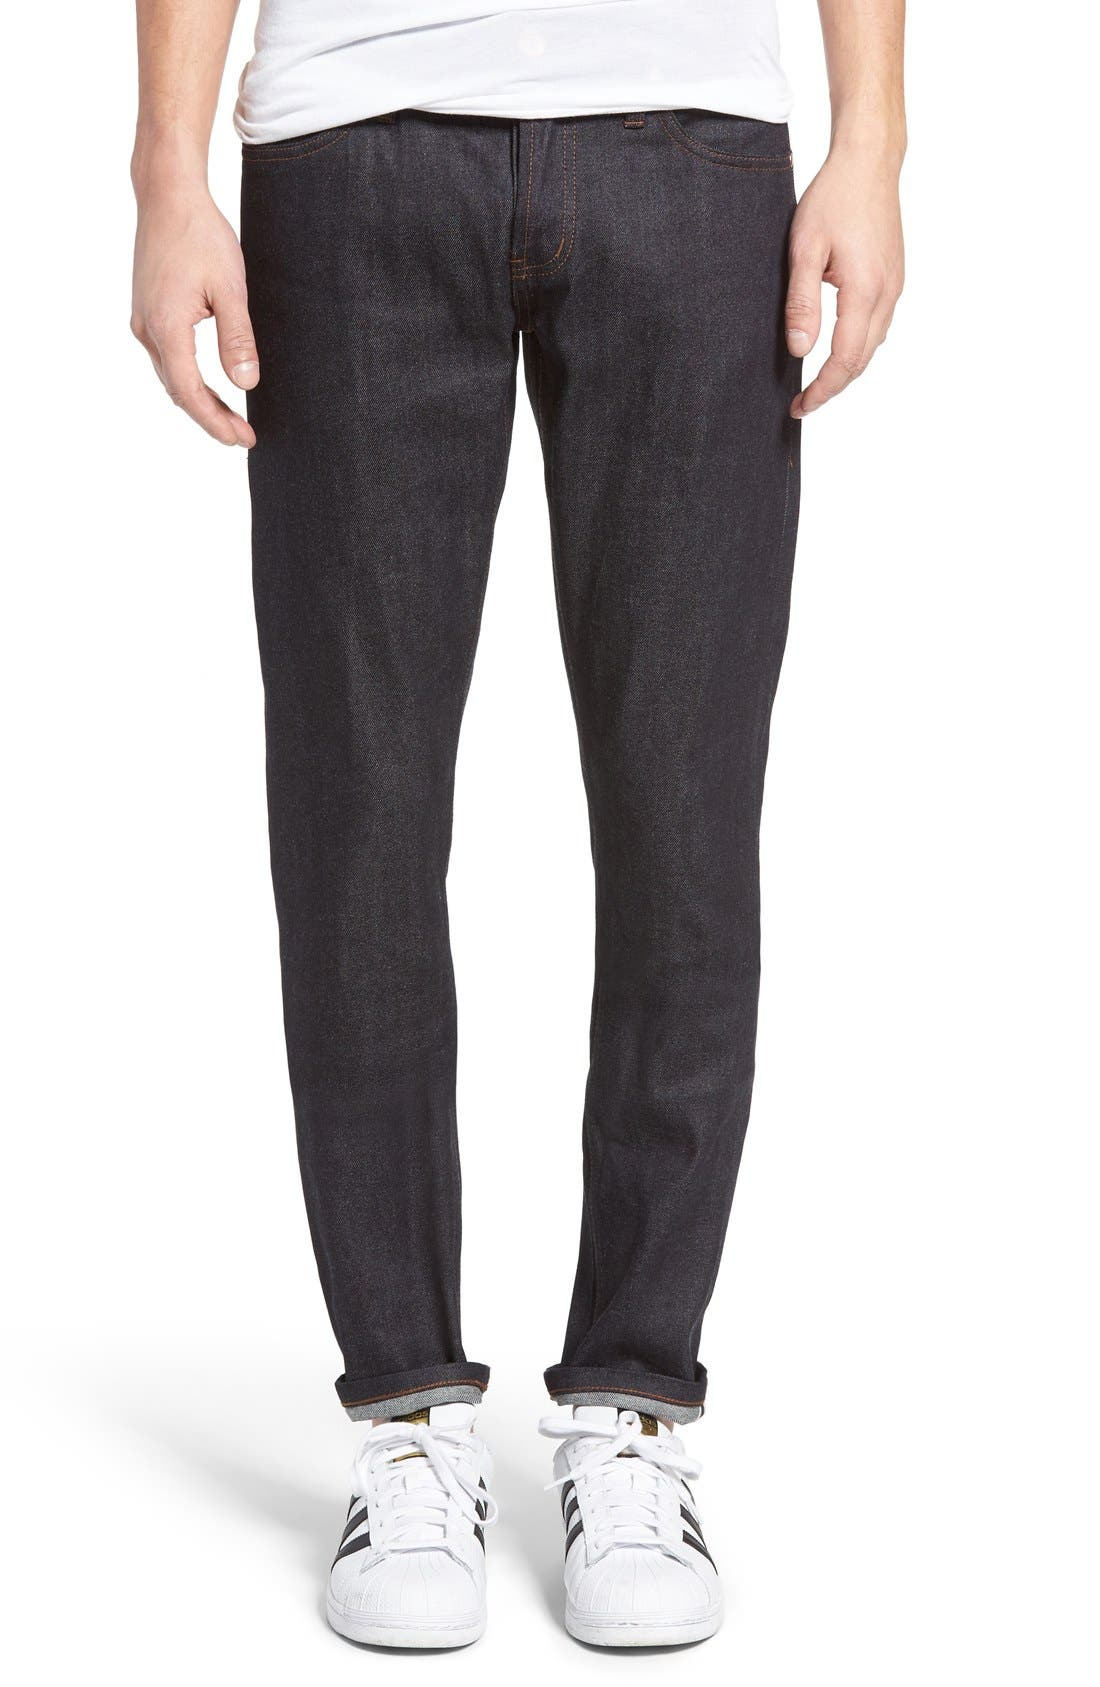 The Unbranded Brand UB422 Selvedge Skinny Fit Jeans